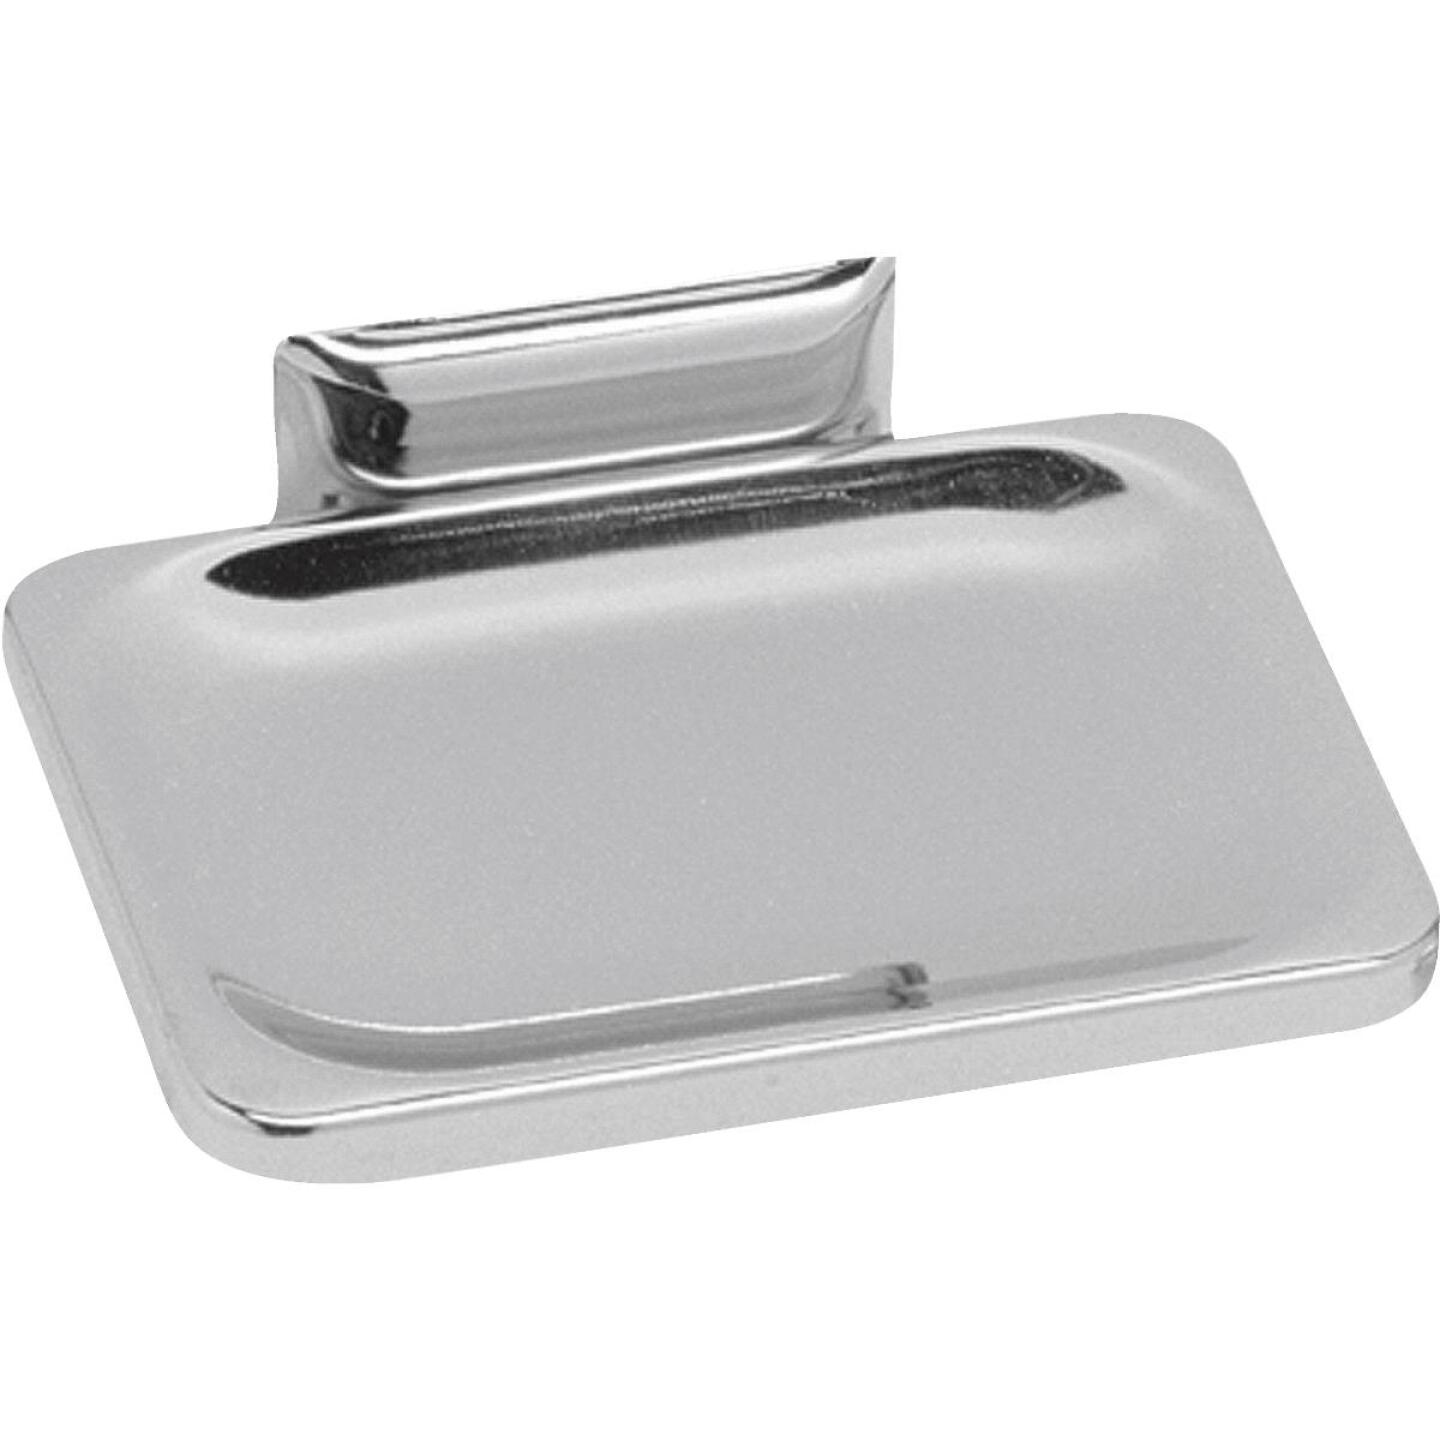 Decko Chrome Soap Dish Image 1